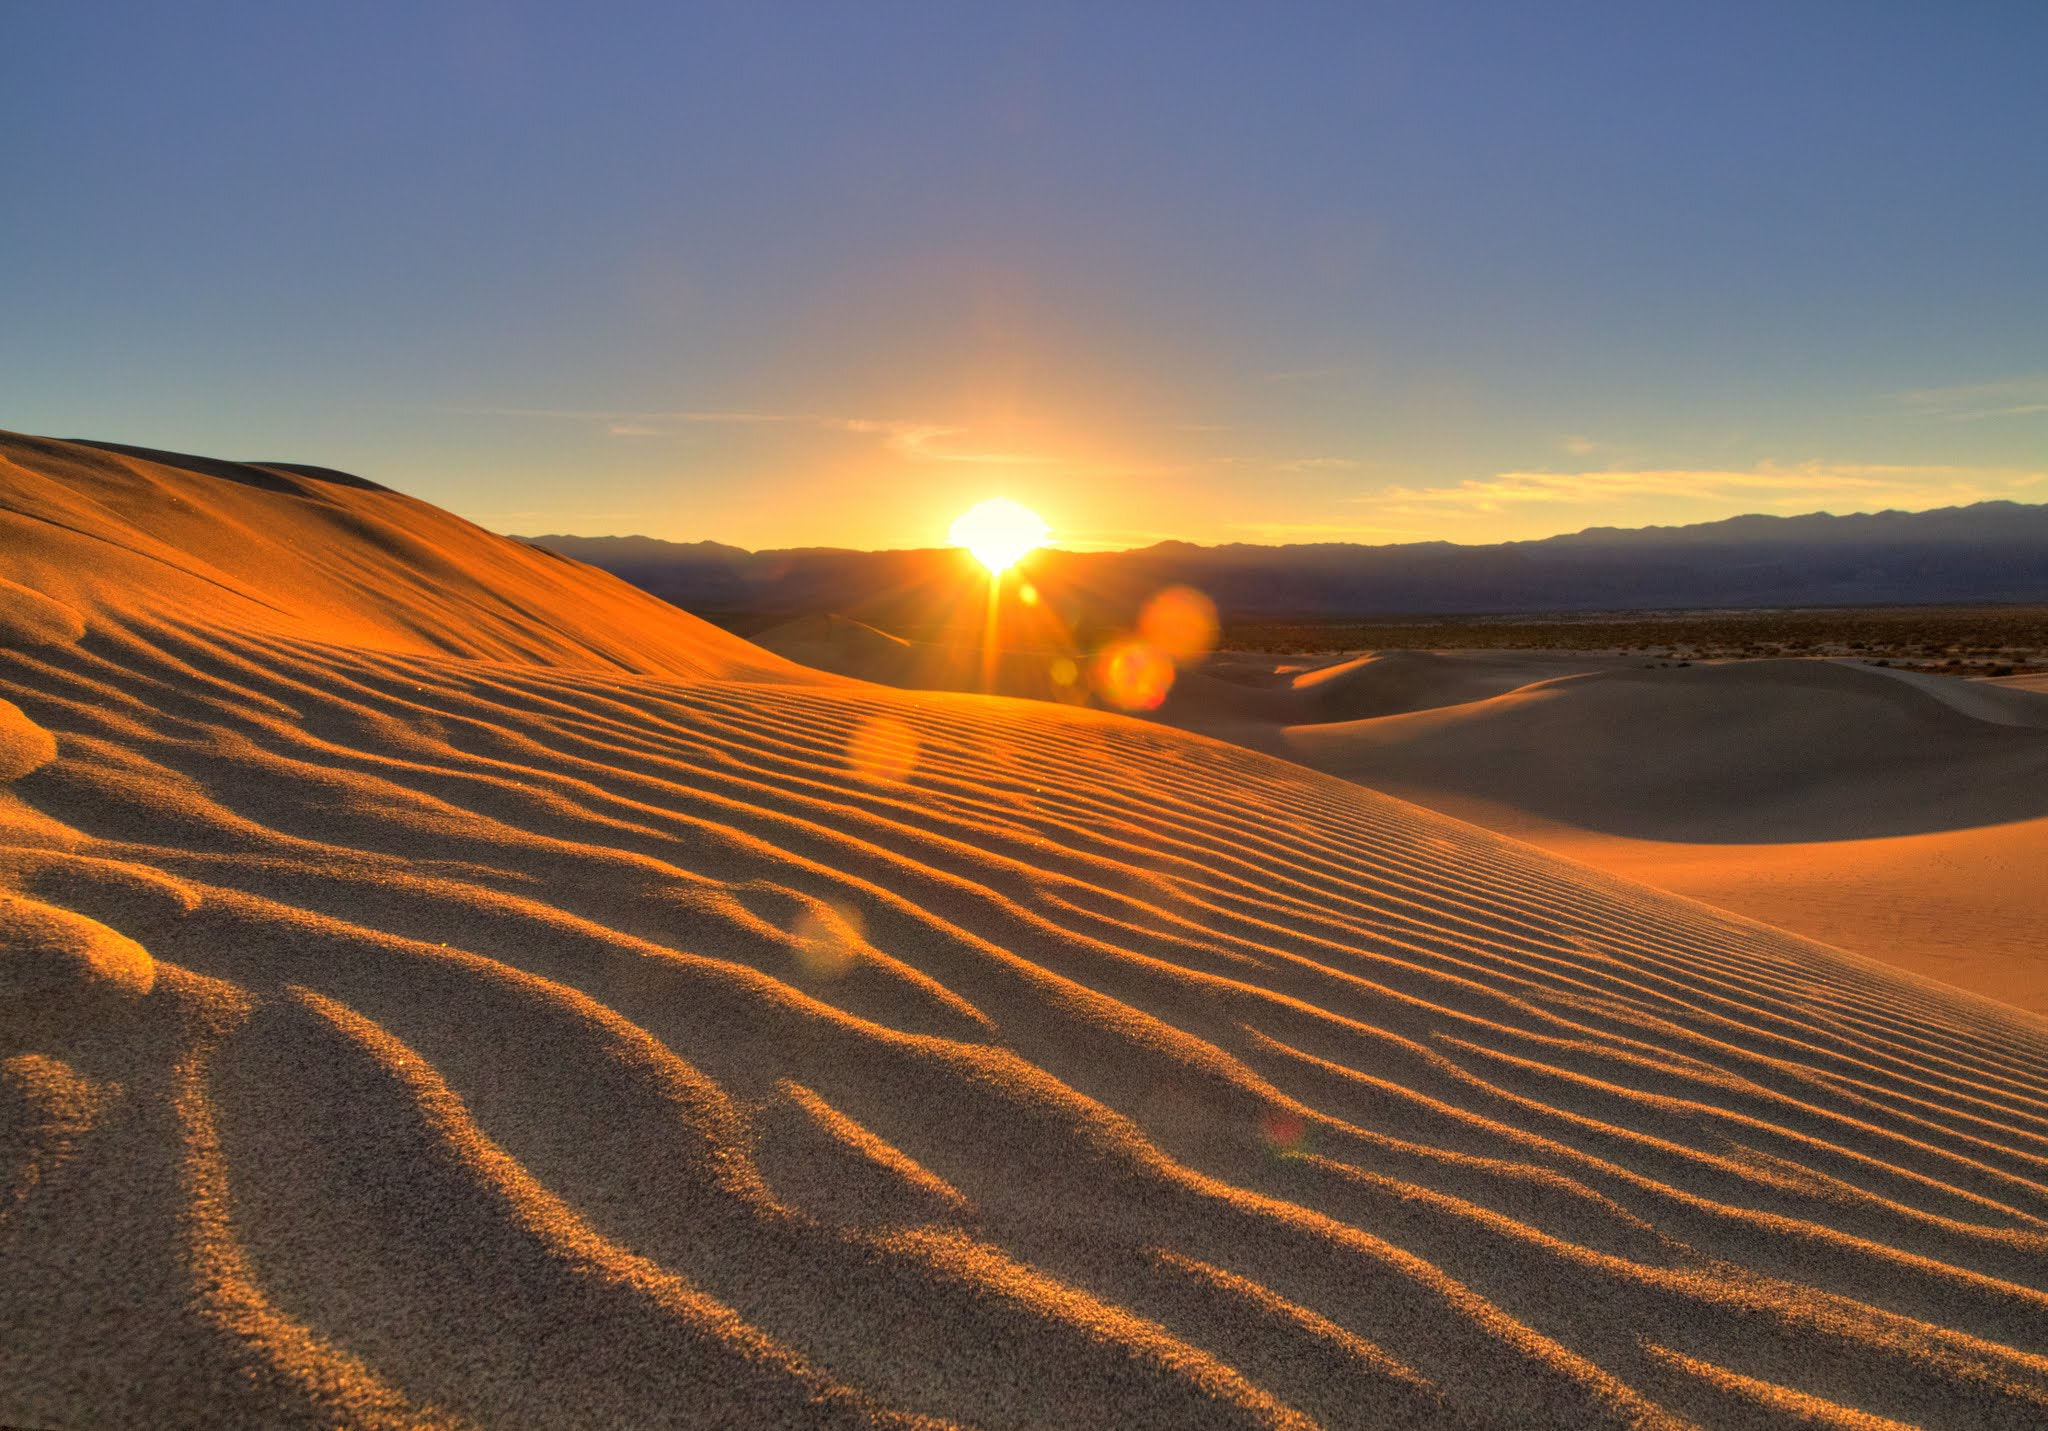 Photograph Sunset On The Dunes by Michael Bonocore on 500px